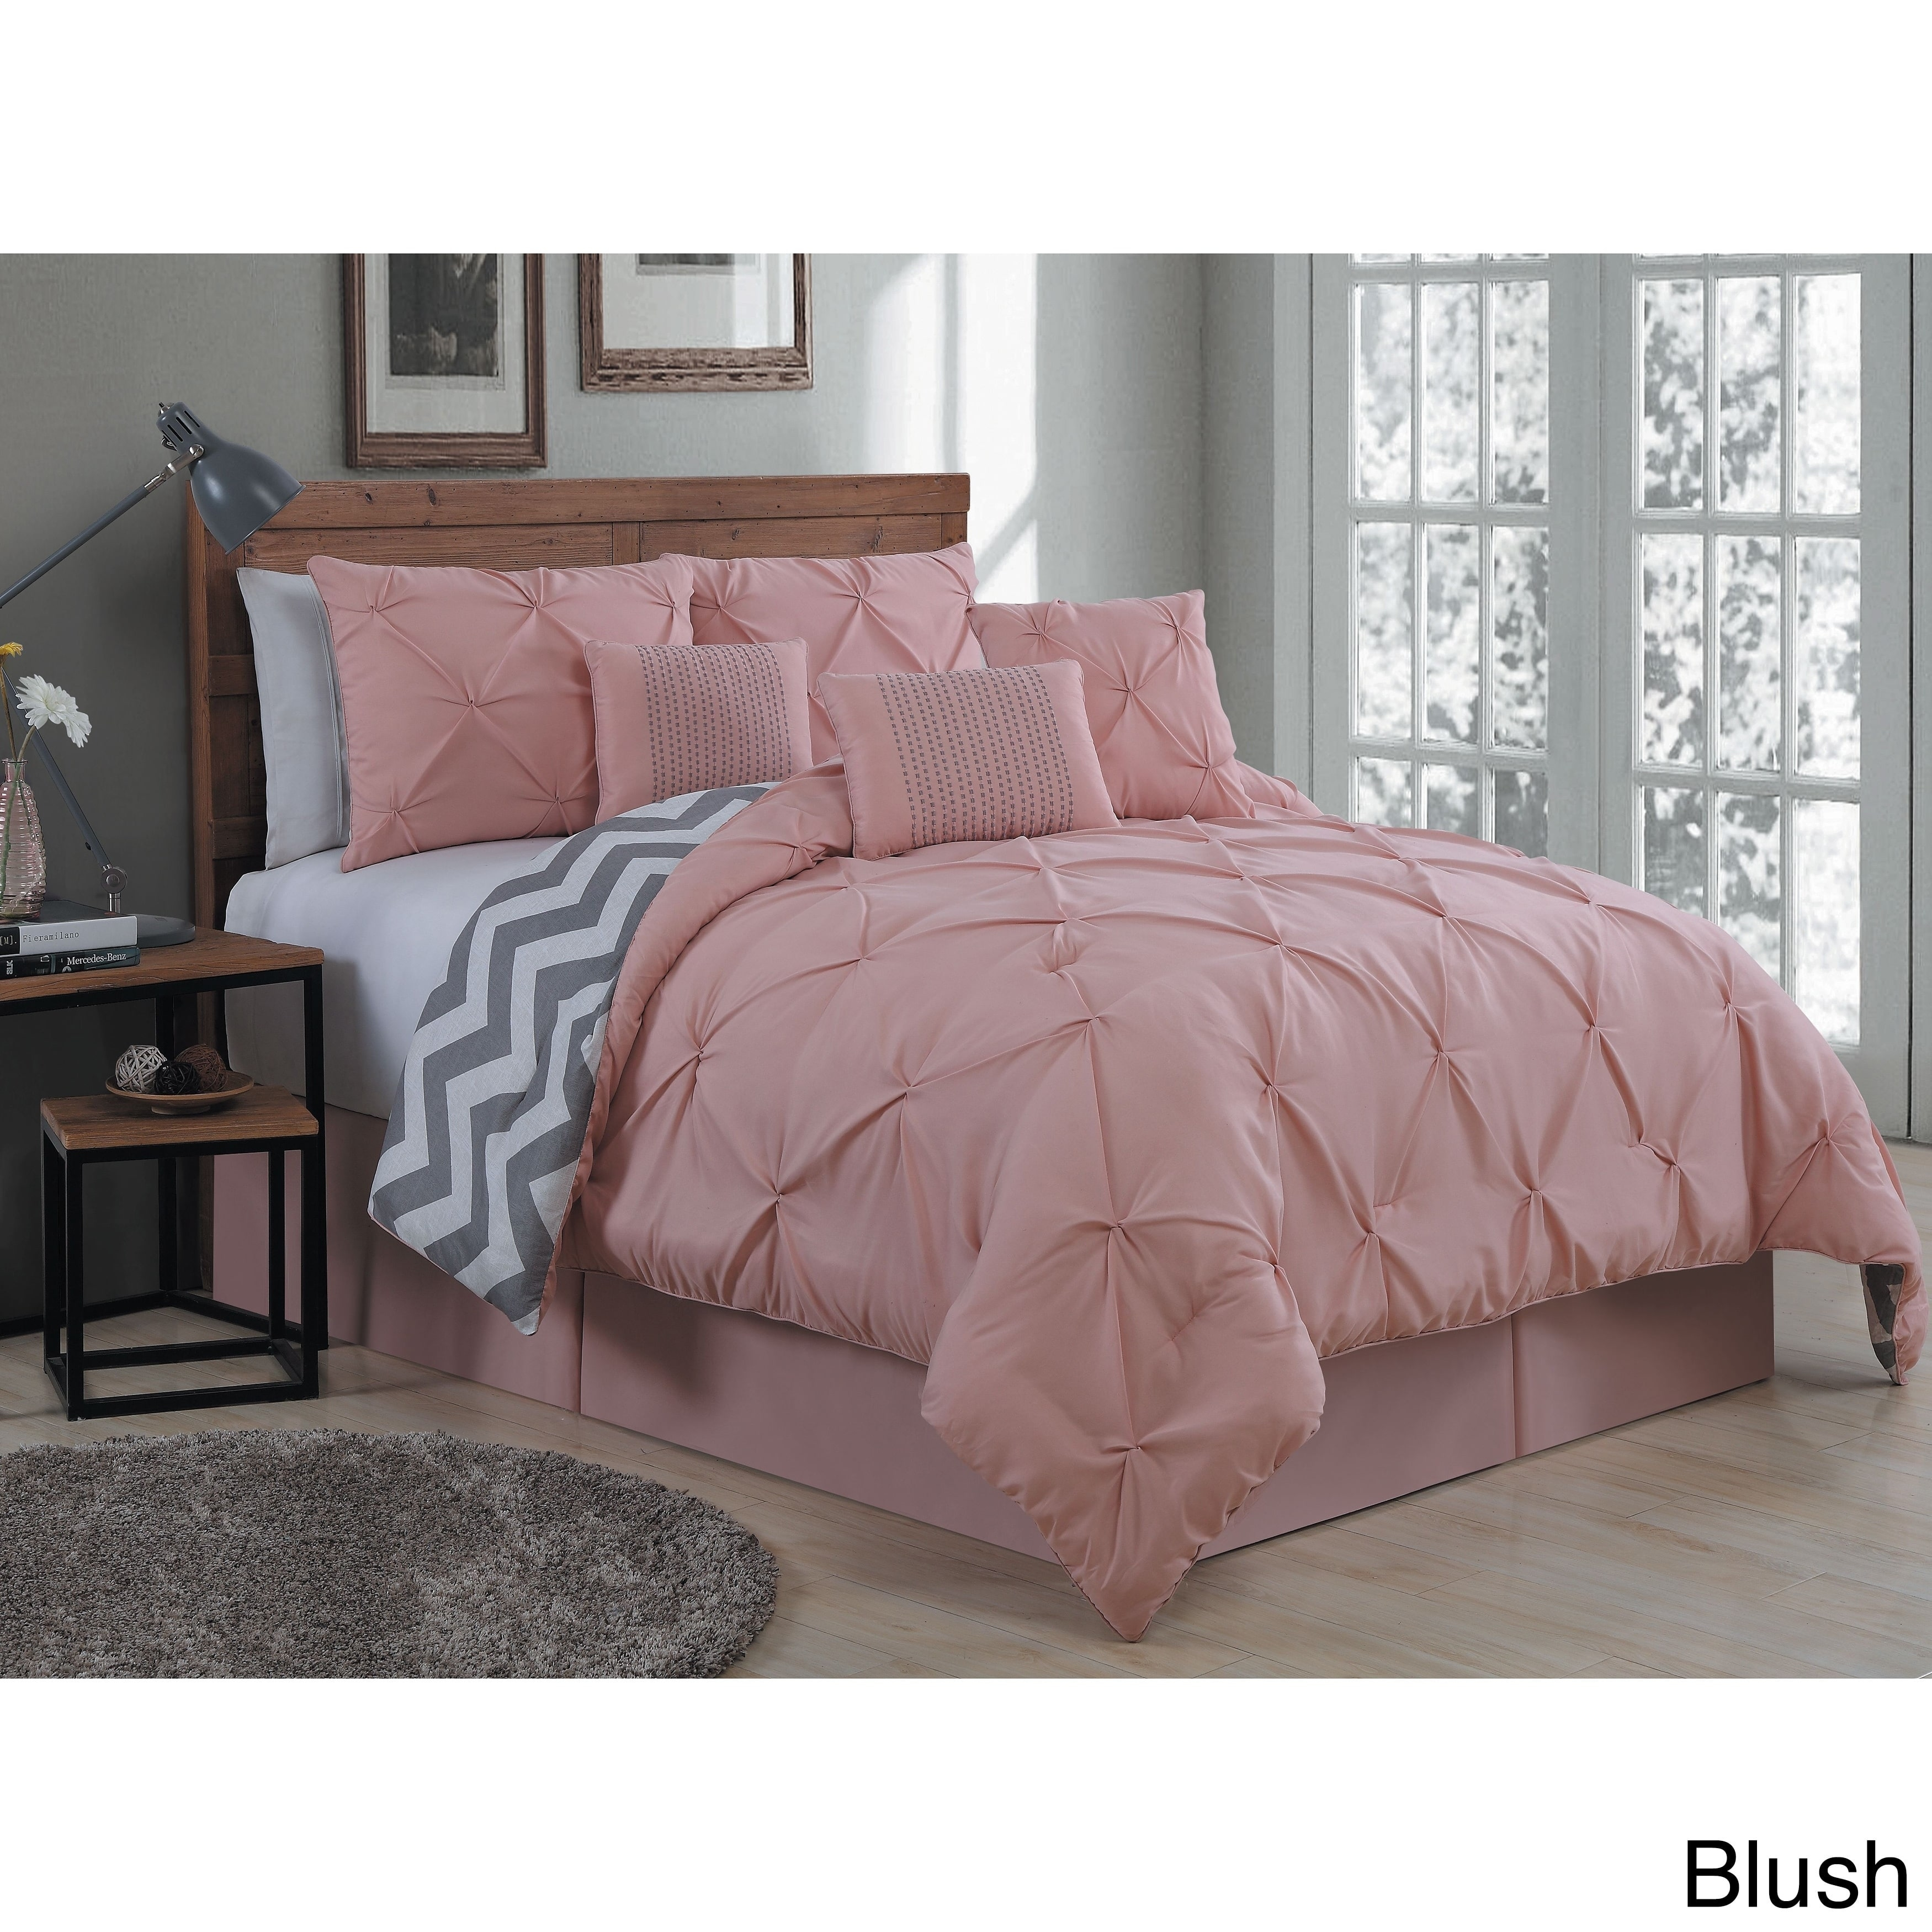 comforters of pinch damasks teal shocking white dillards designlue set red aqua black full pleat and tealedding chevroneddingblack comforter bedding size design down sets photo